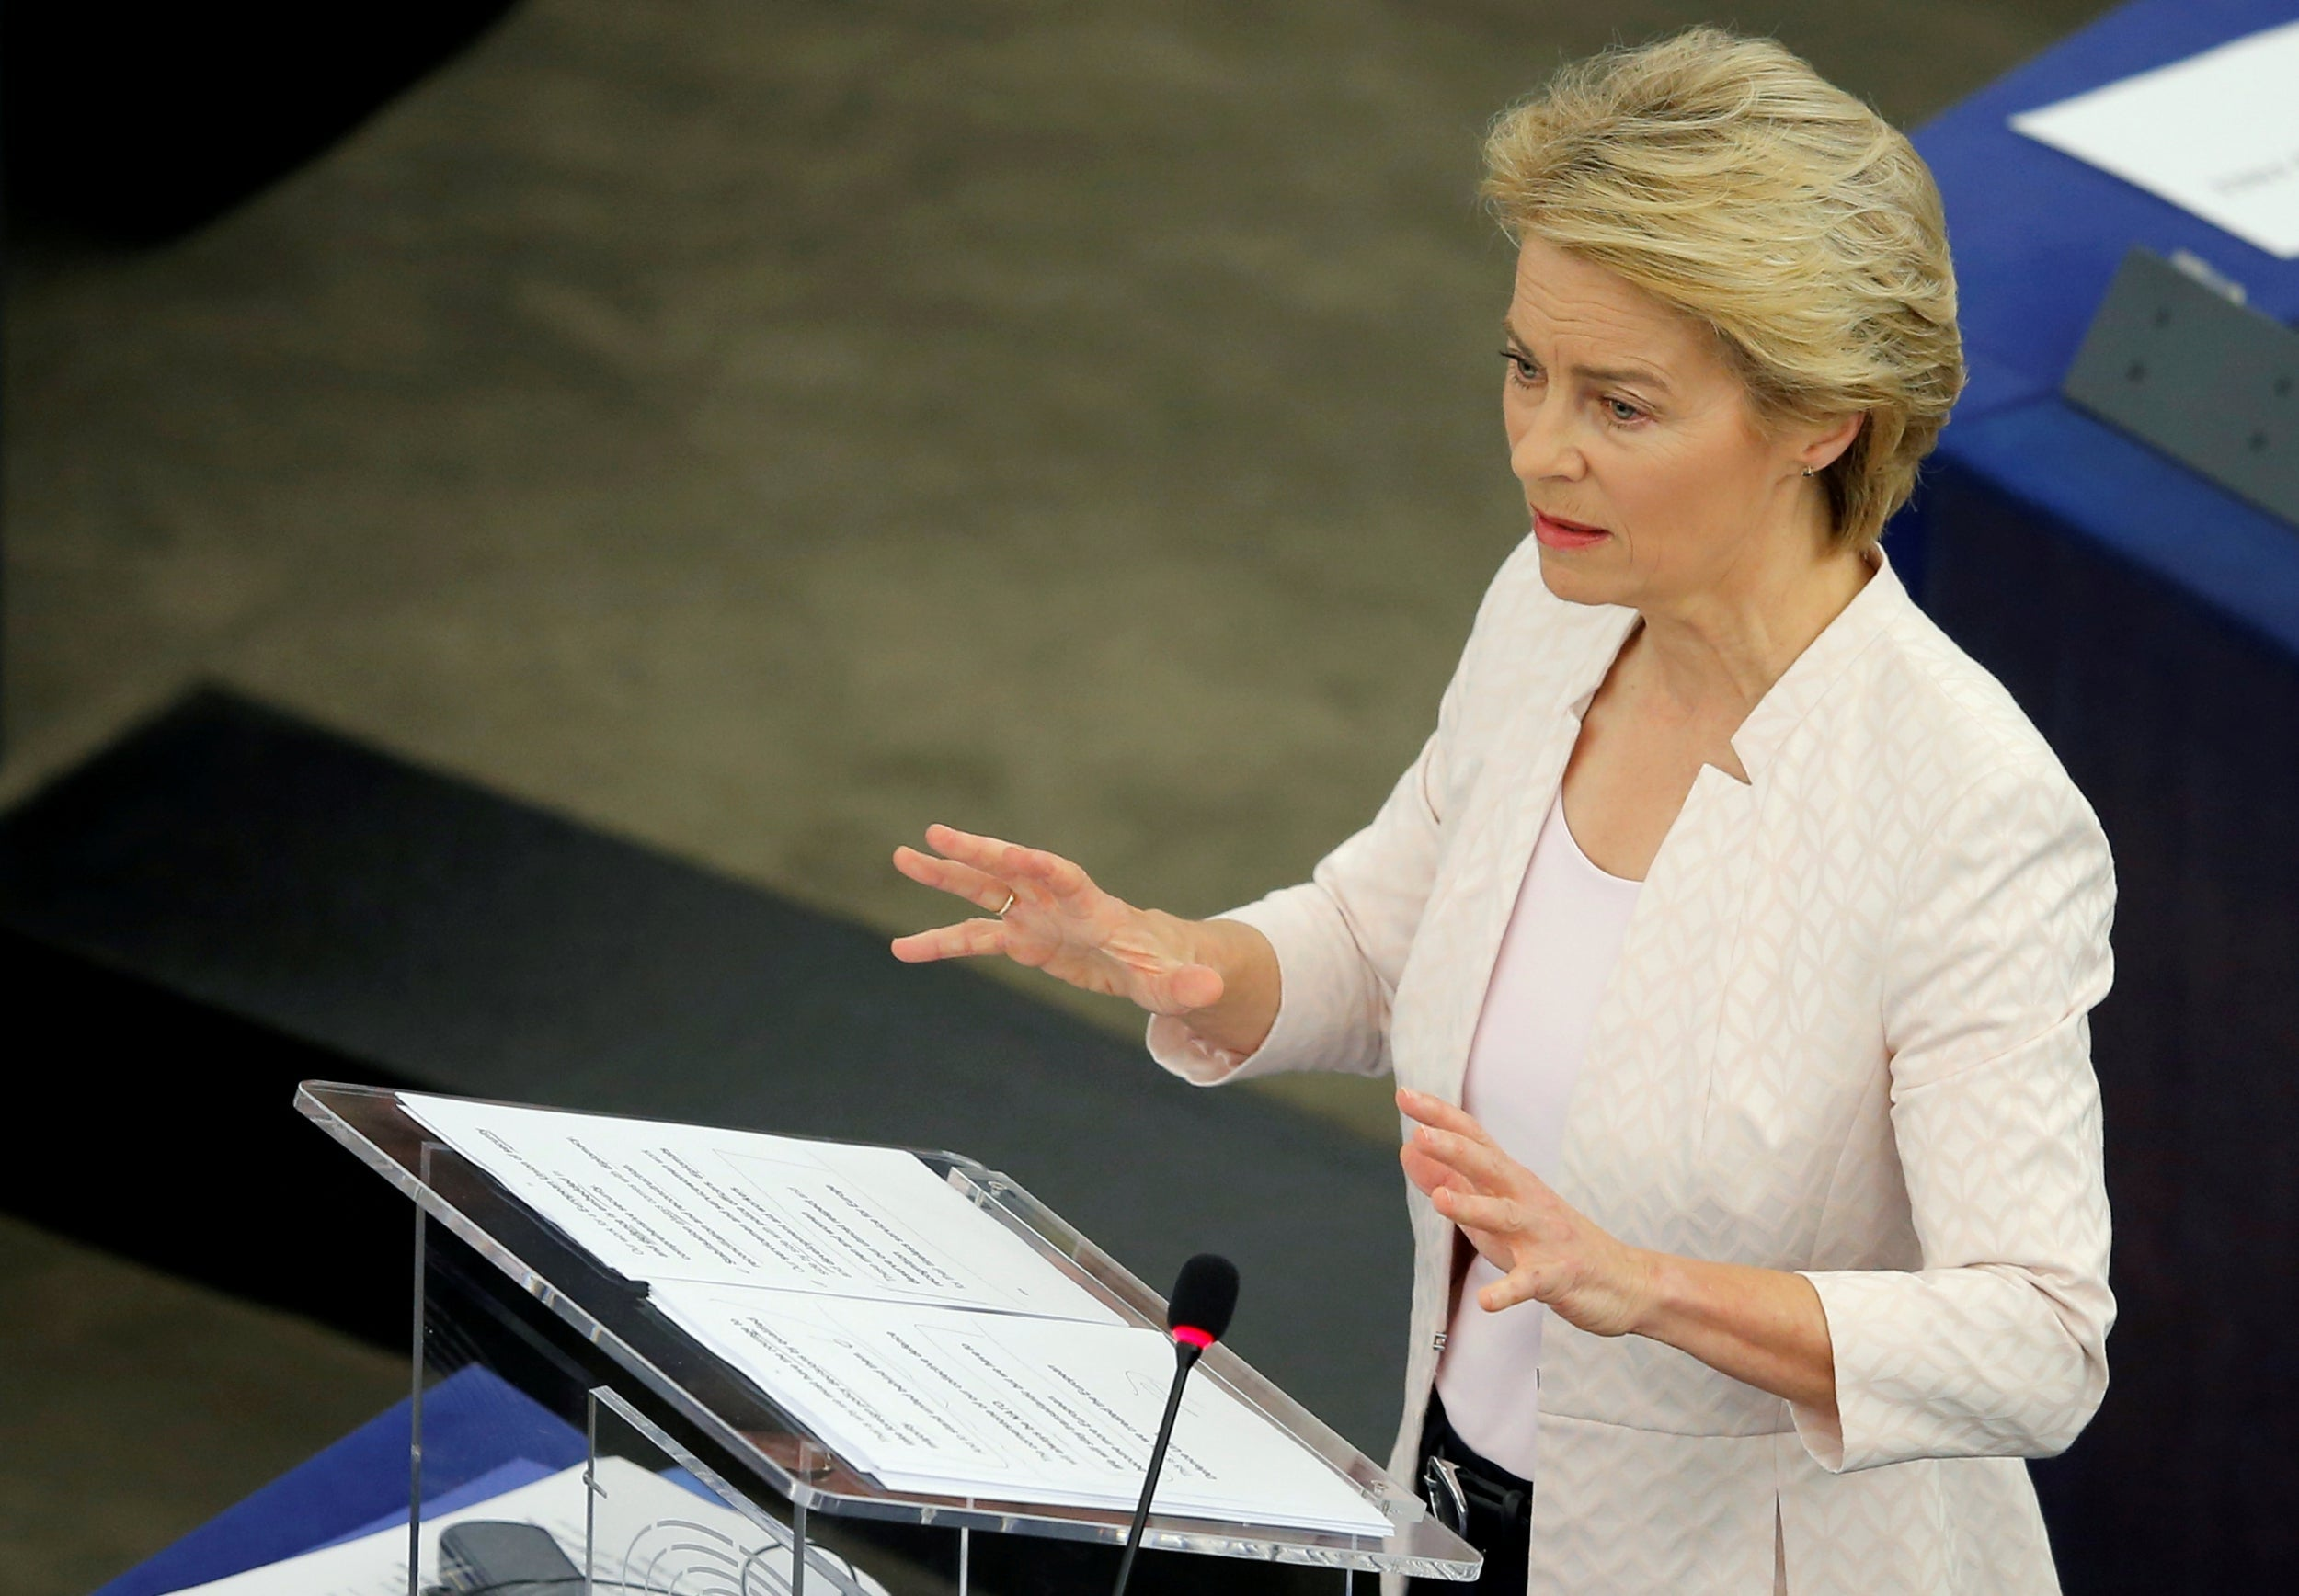 Ursula von der Leyen elected as next EU Commission president replacing Jean-Claude Juncker 2